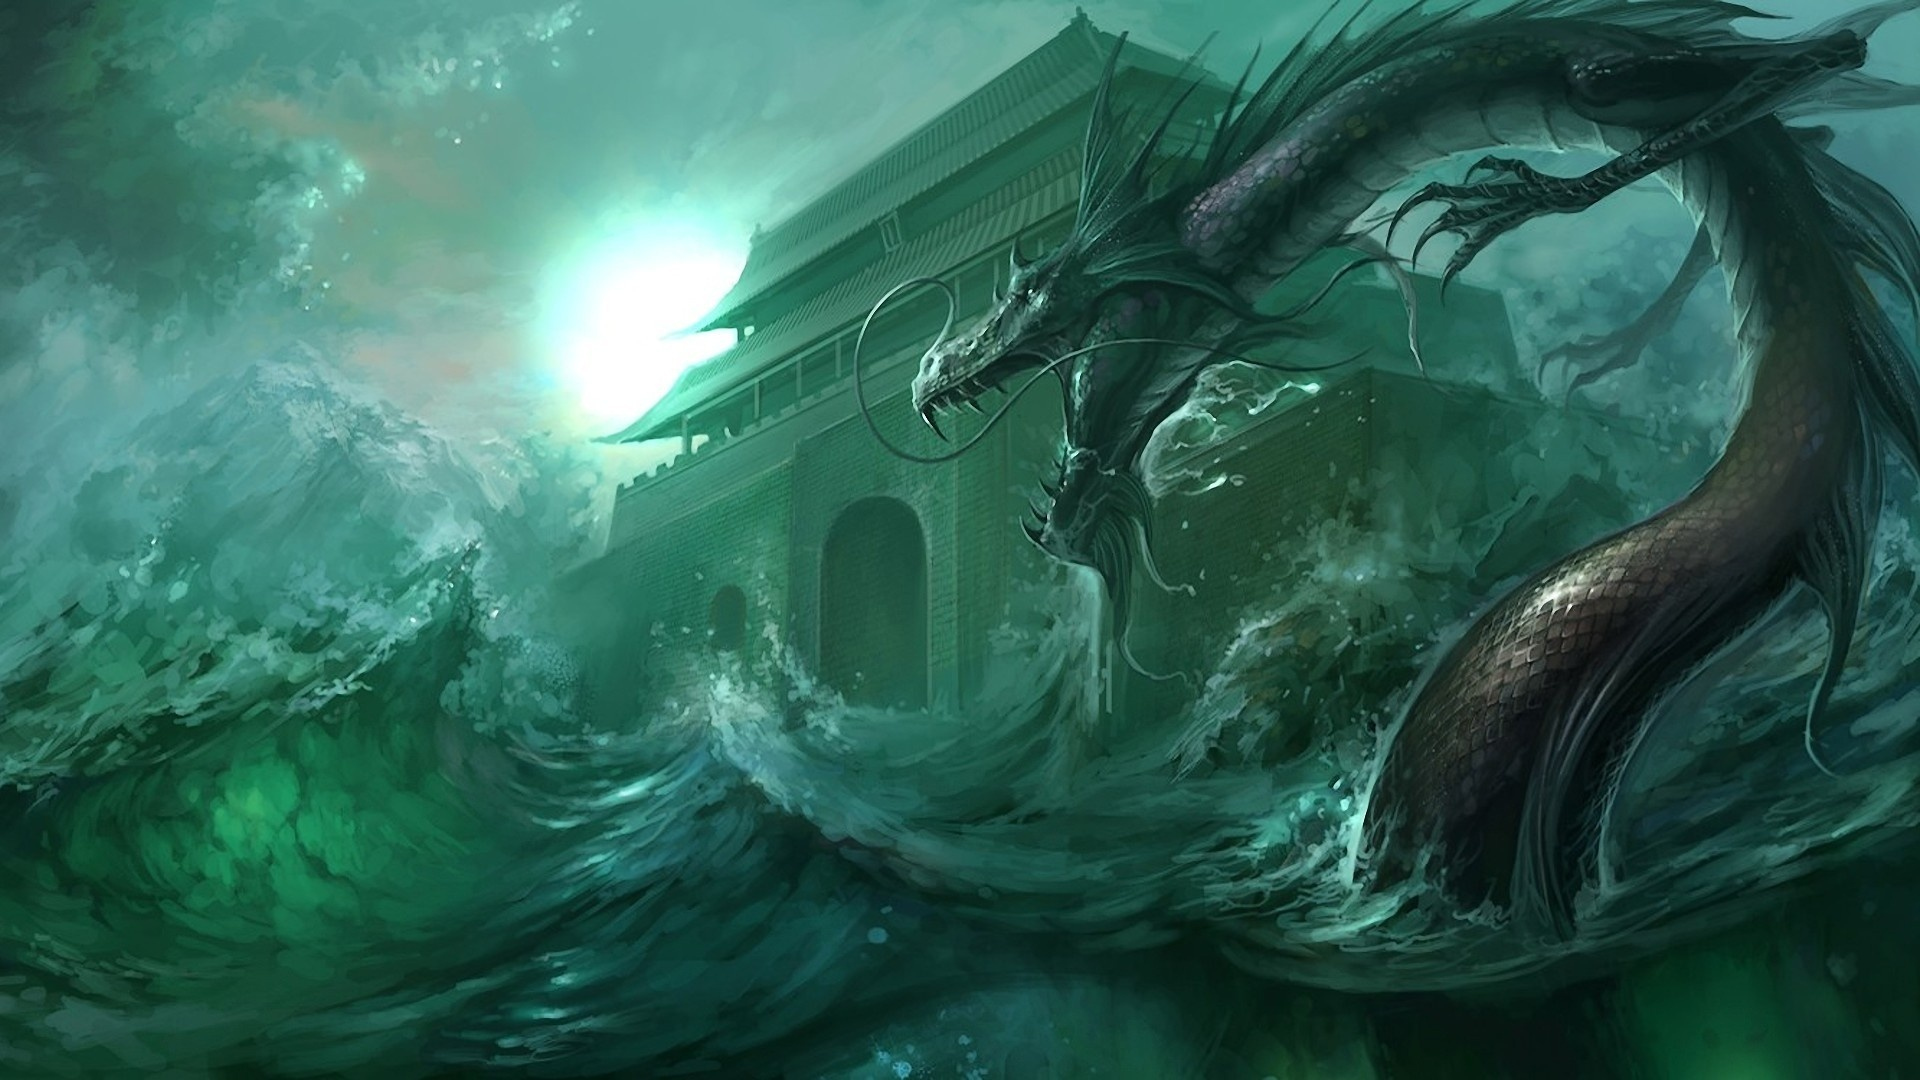 Sea Monster Full HD Wallpaper And Background Image